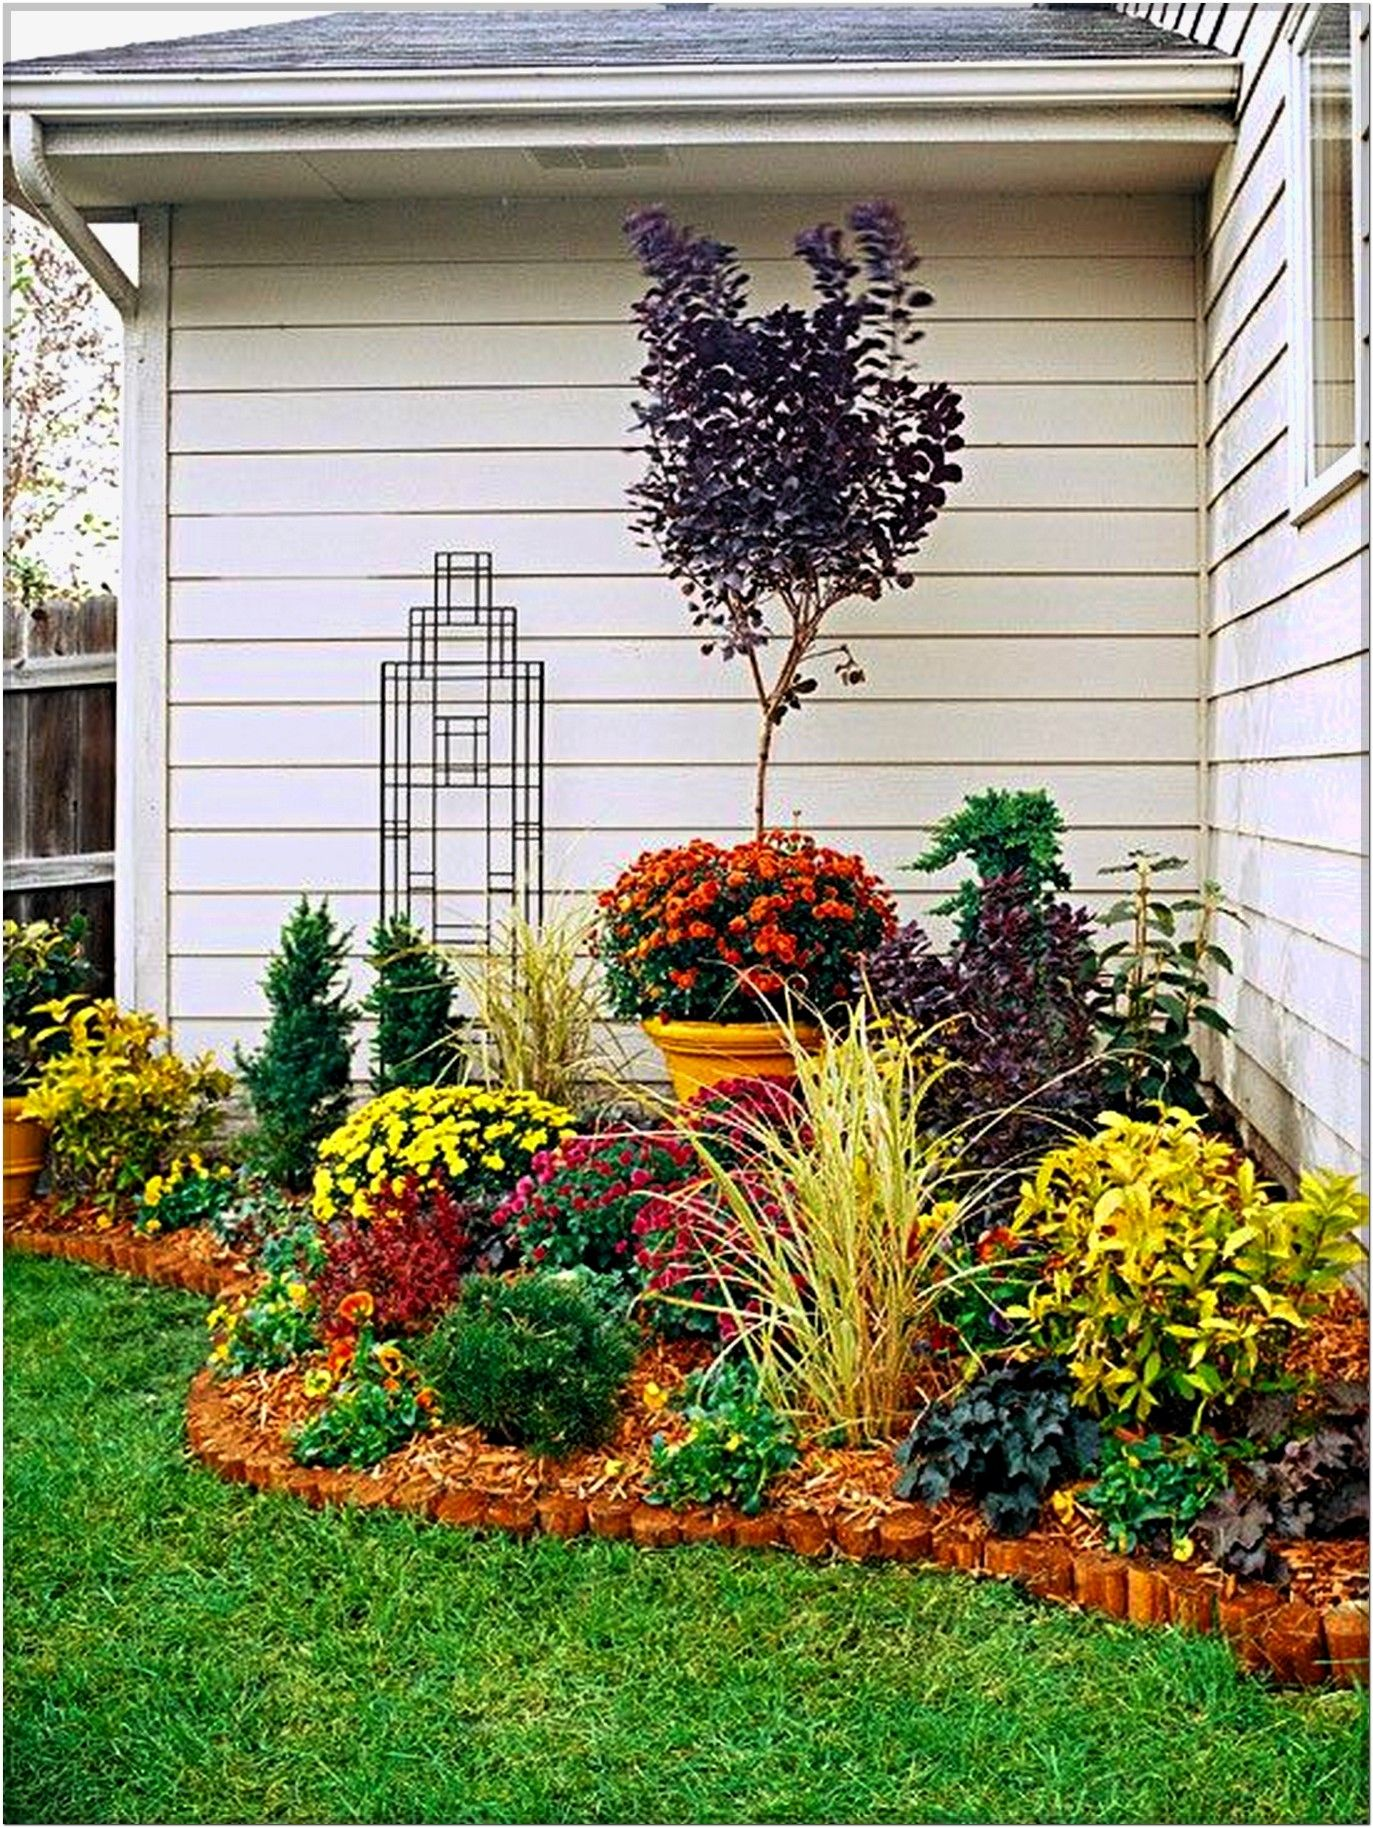 Flower Garden Design fancy inspiration ideas how to plant a flower garden interesting design flowers pictures of flower Flower Small Corner Garden Design